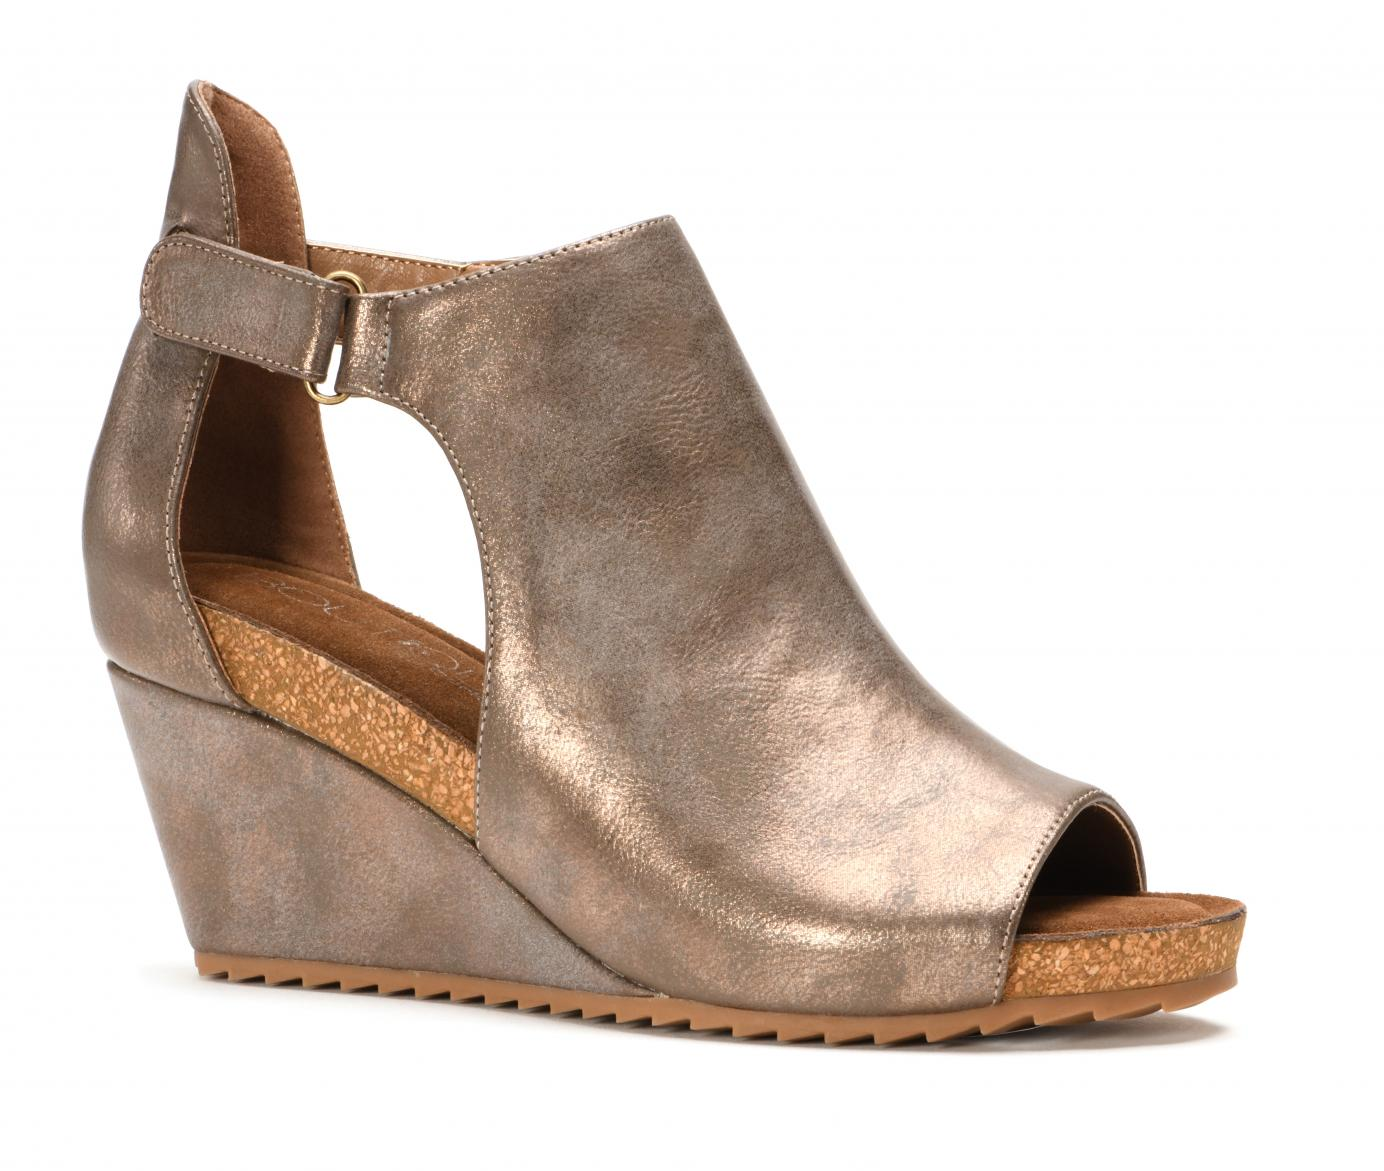 Corkys Shoes - Sunburst II Bronze Metallic Wedge